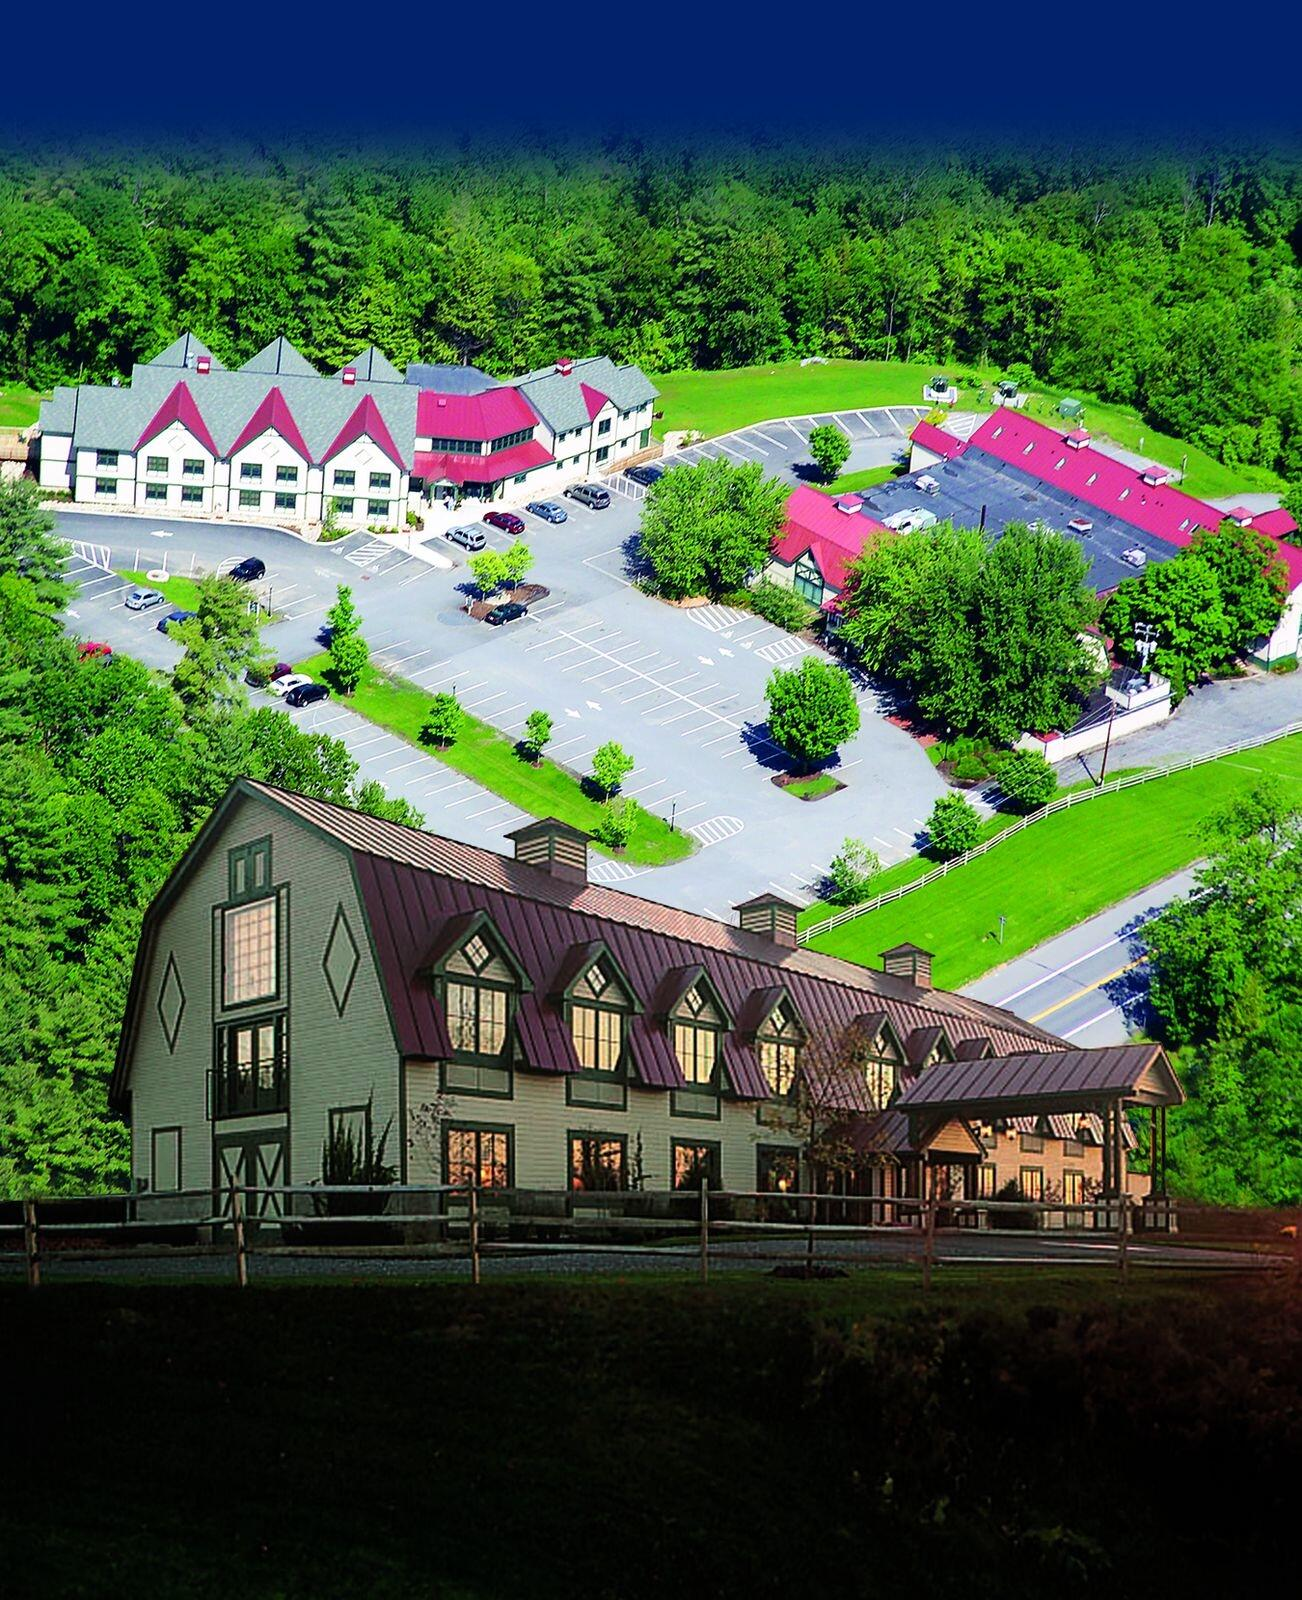 Exterior view of the property with aerial photo superimposed in